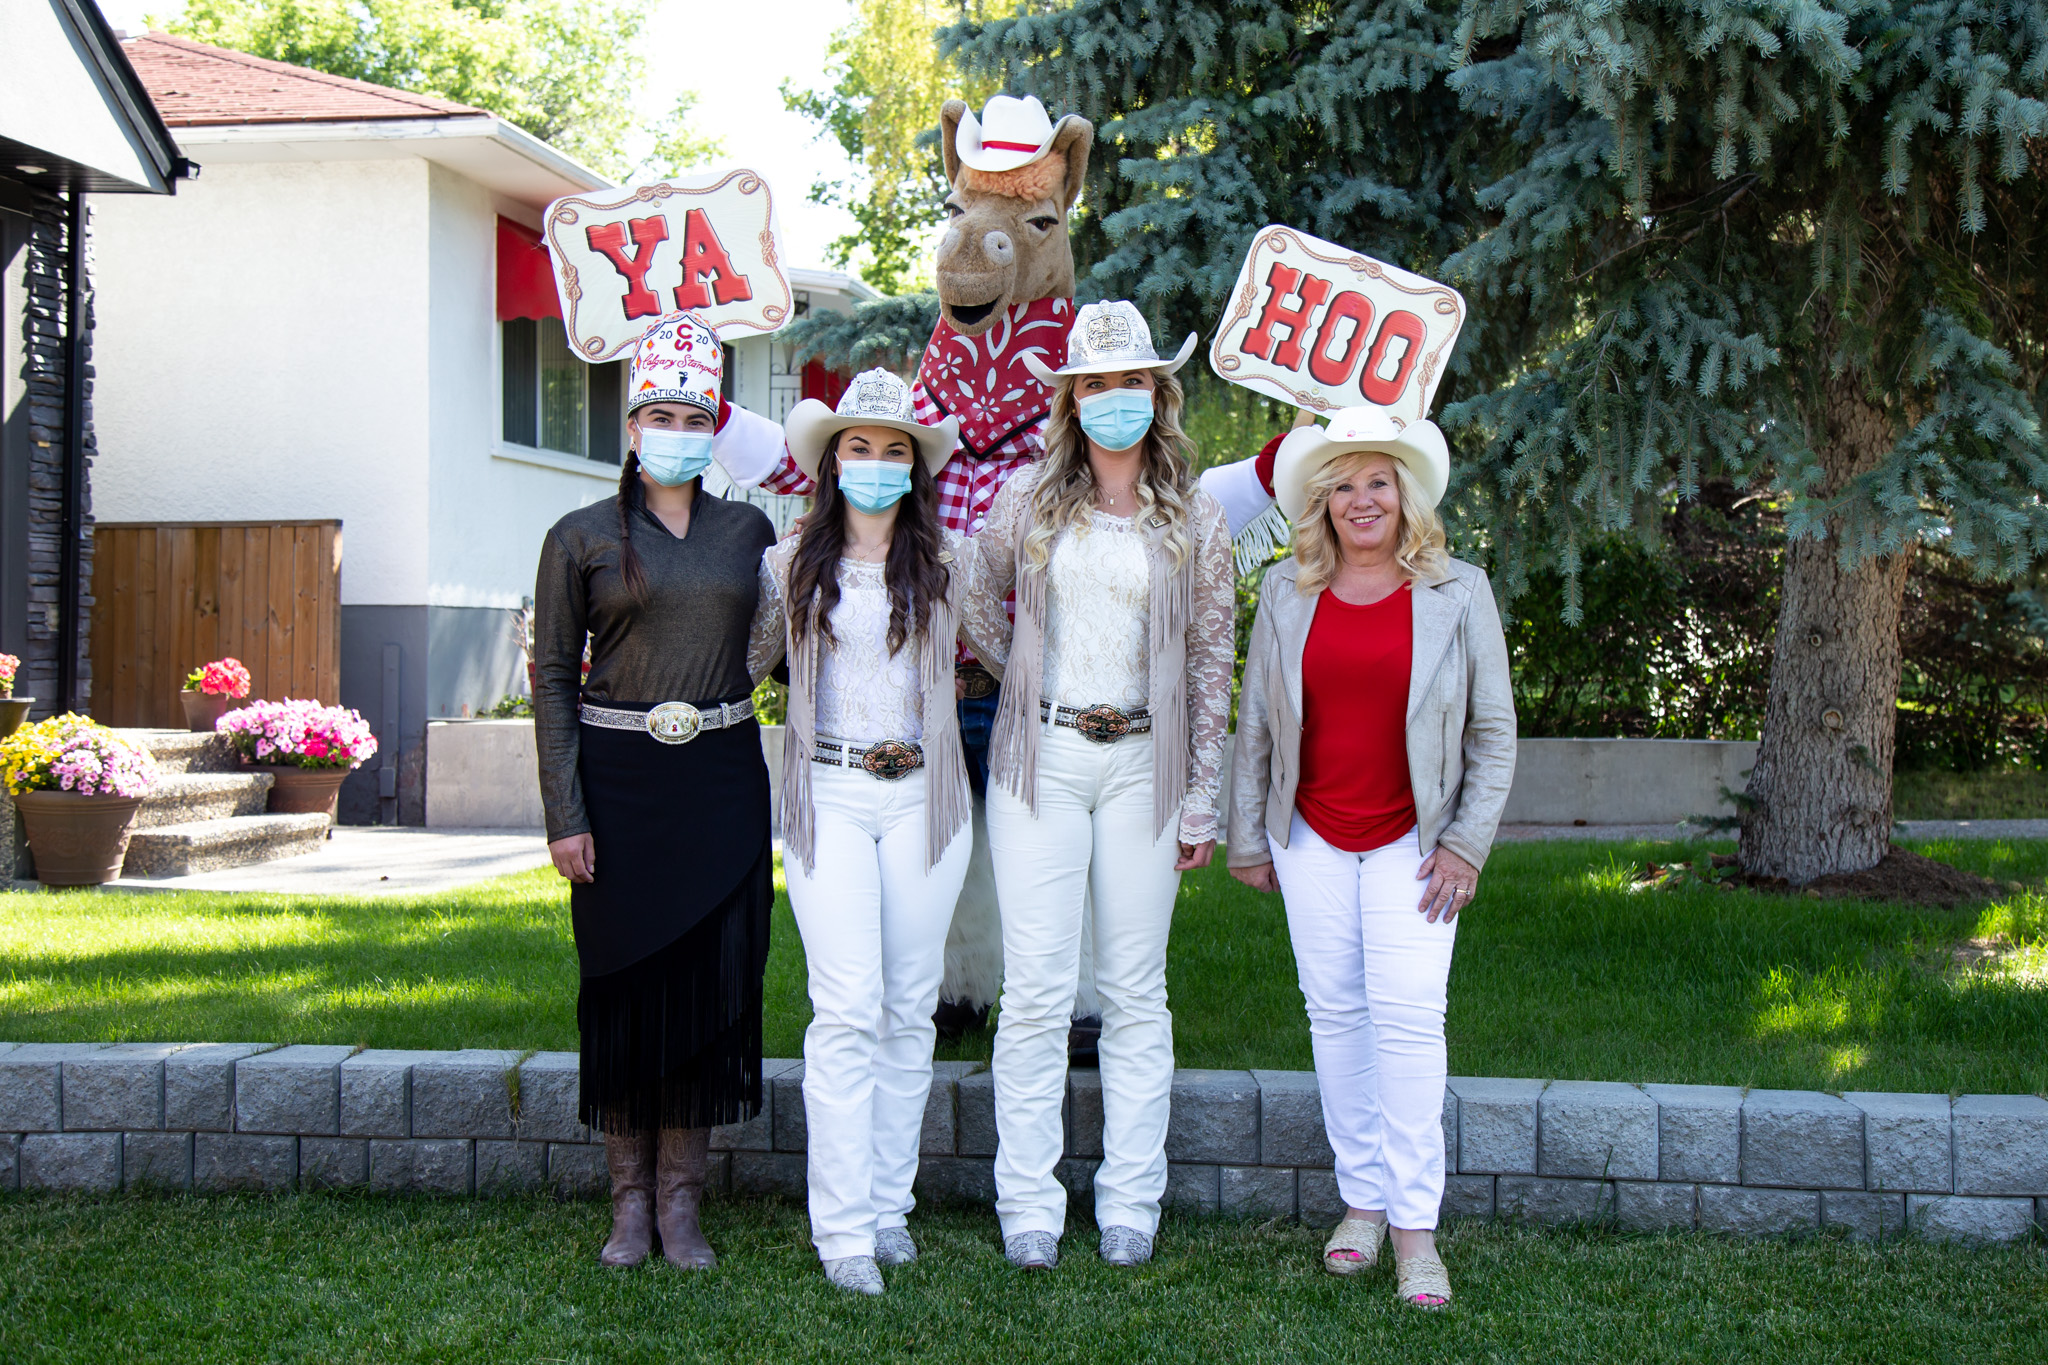 Group shot of the Stampede Princess' with Harry the Horse holding Ya Hoo signs